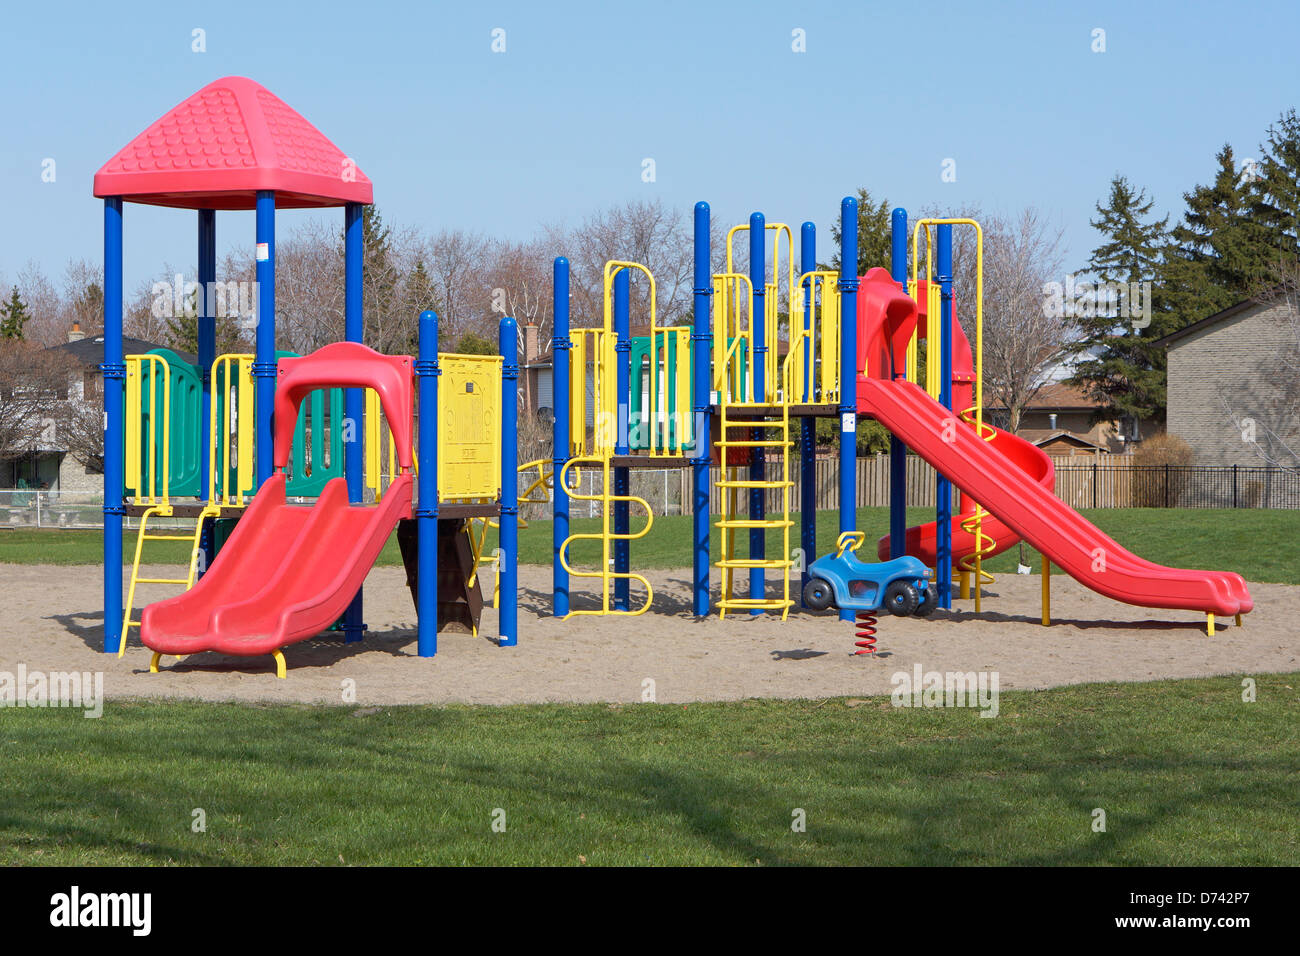 Children's Playground, Slides on School Grounds - Stock Image